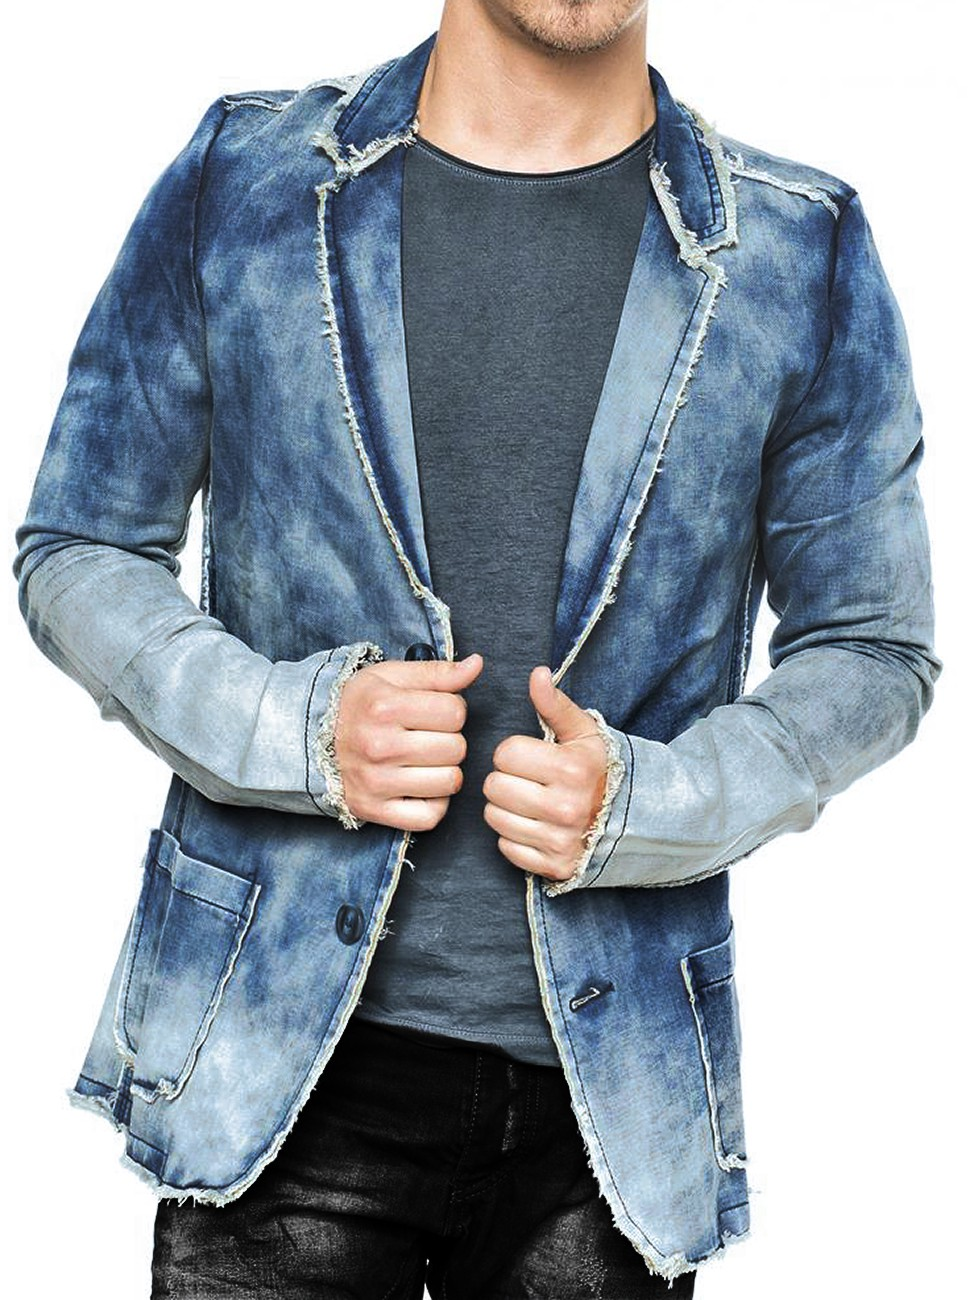 herren jeanssakko jeansjacke sakko jeans vintage denim jacke pitt ebay. Black Bedroom Furniture Sets. Home Design Ideas